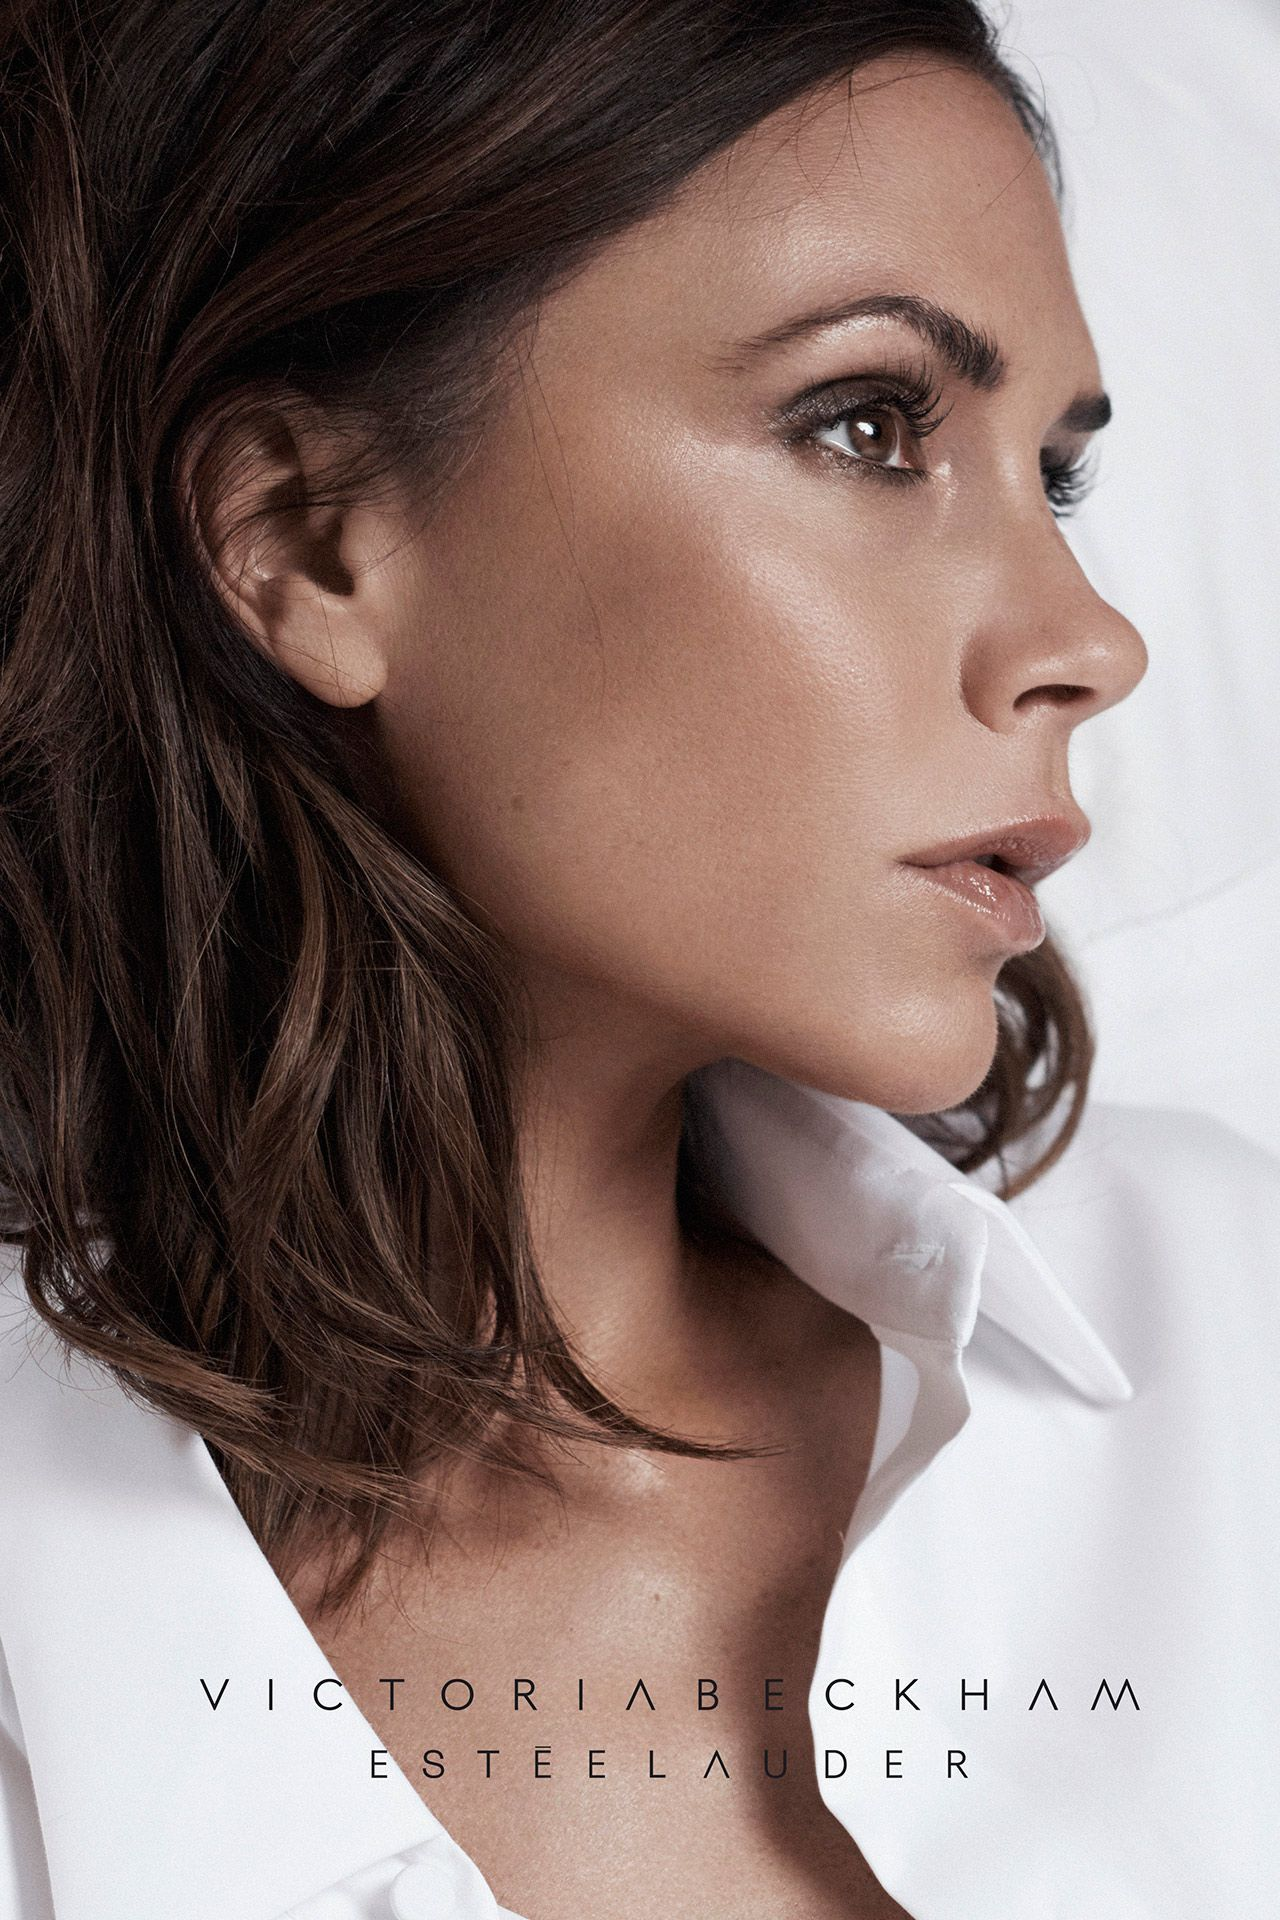 Every single hairstyle Victoria Beckham has rocked from